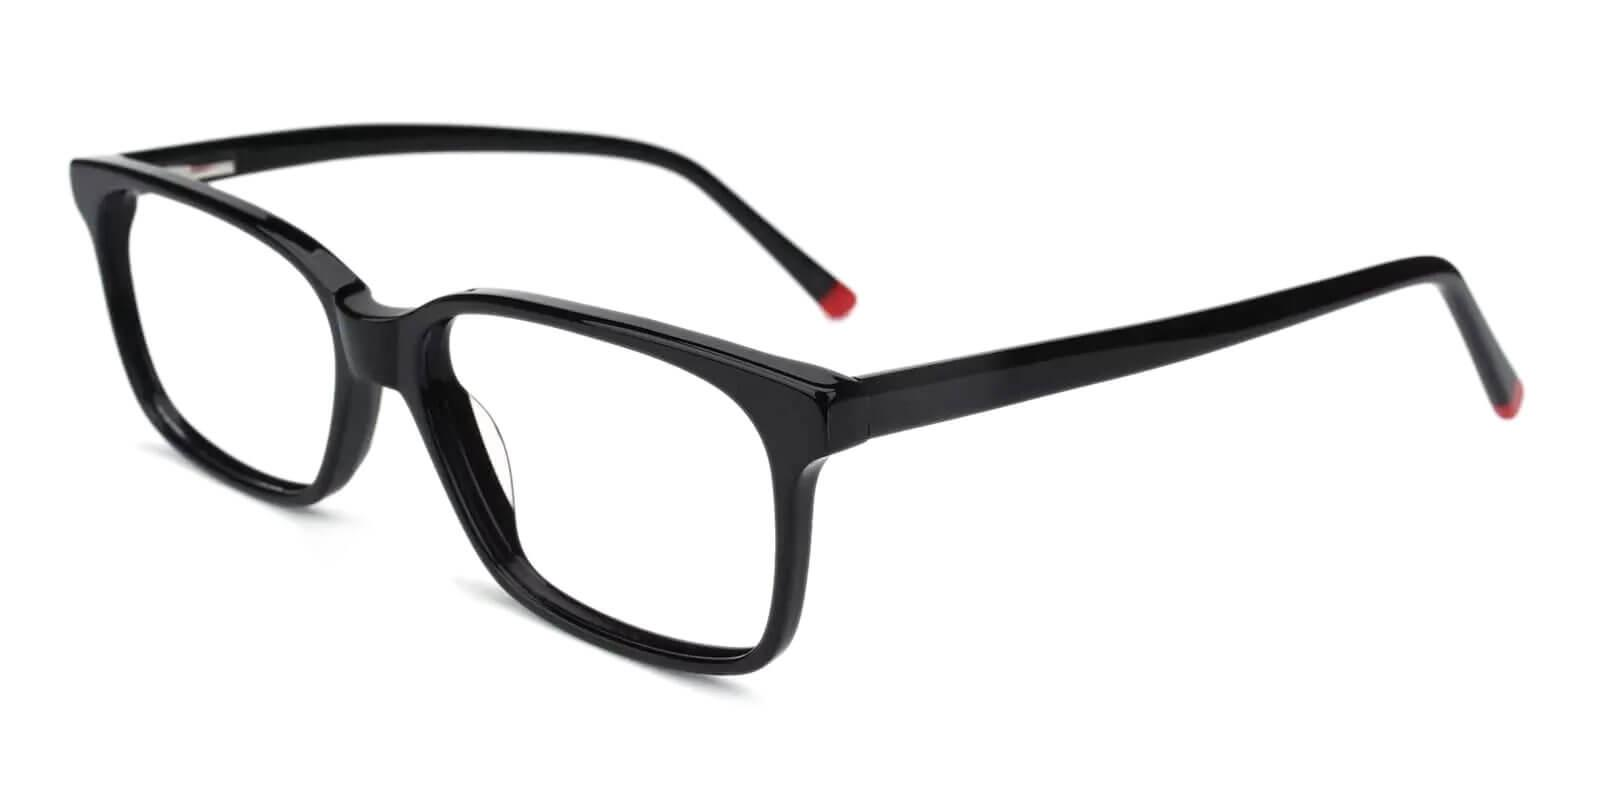 Lochloosa Black Acetate Eyeglasses , SpringHinges , UniversalBridgeFit Frames from ABBE Glasses